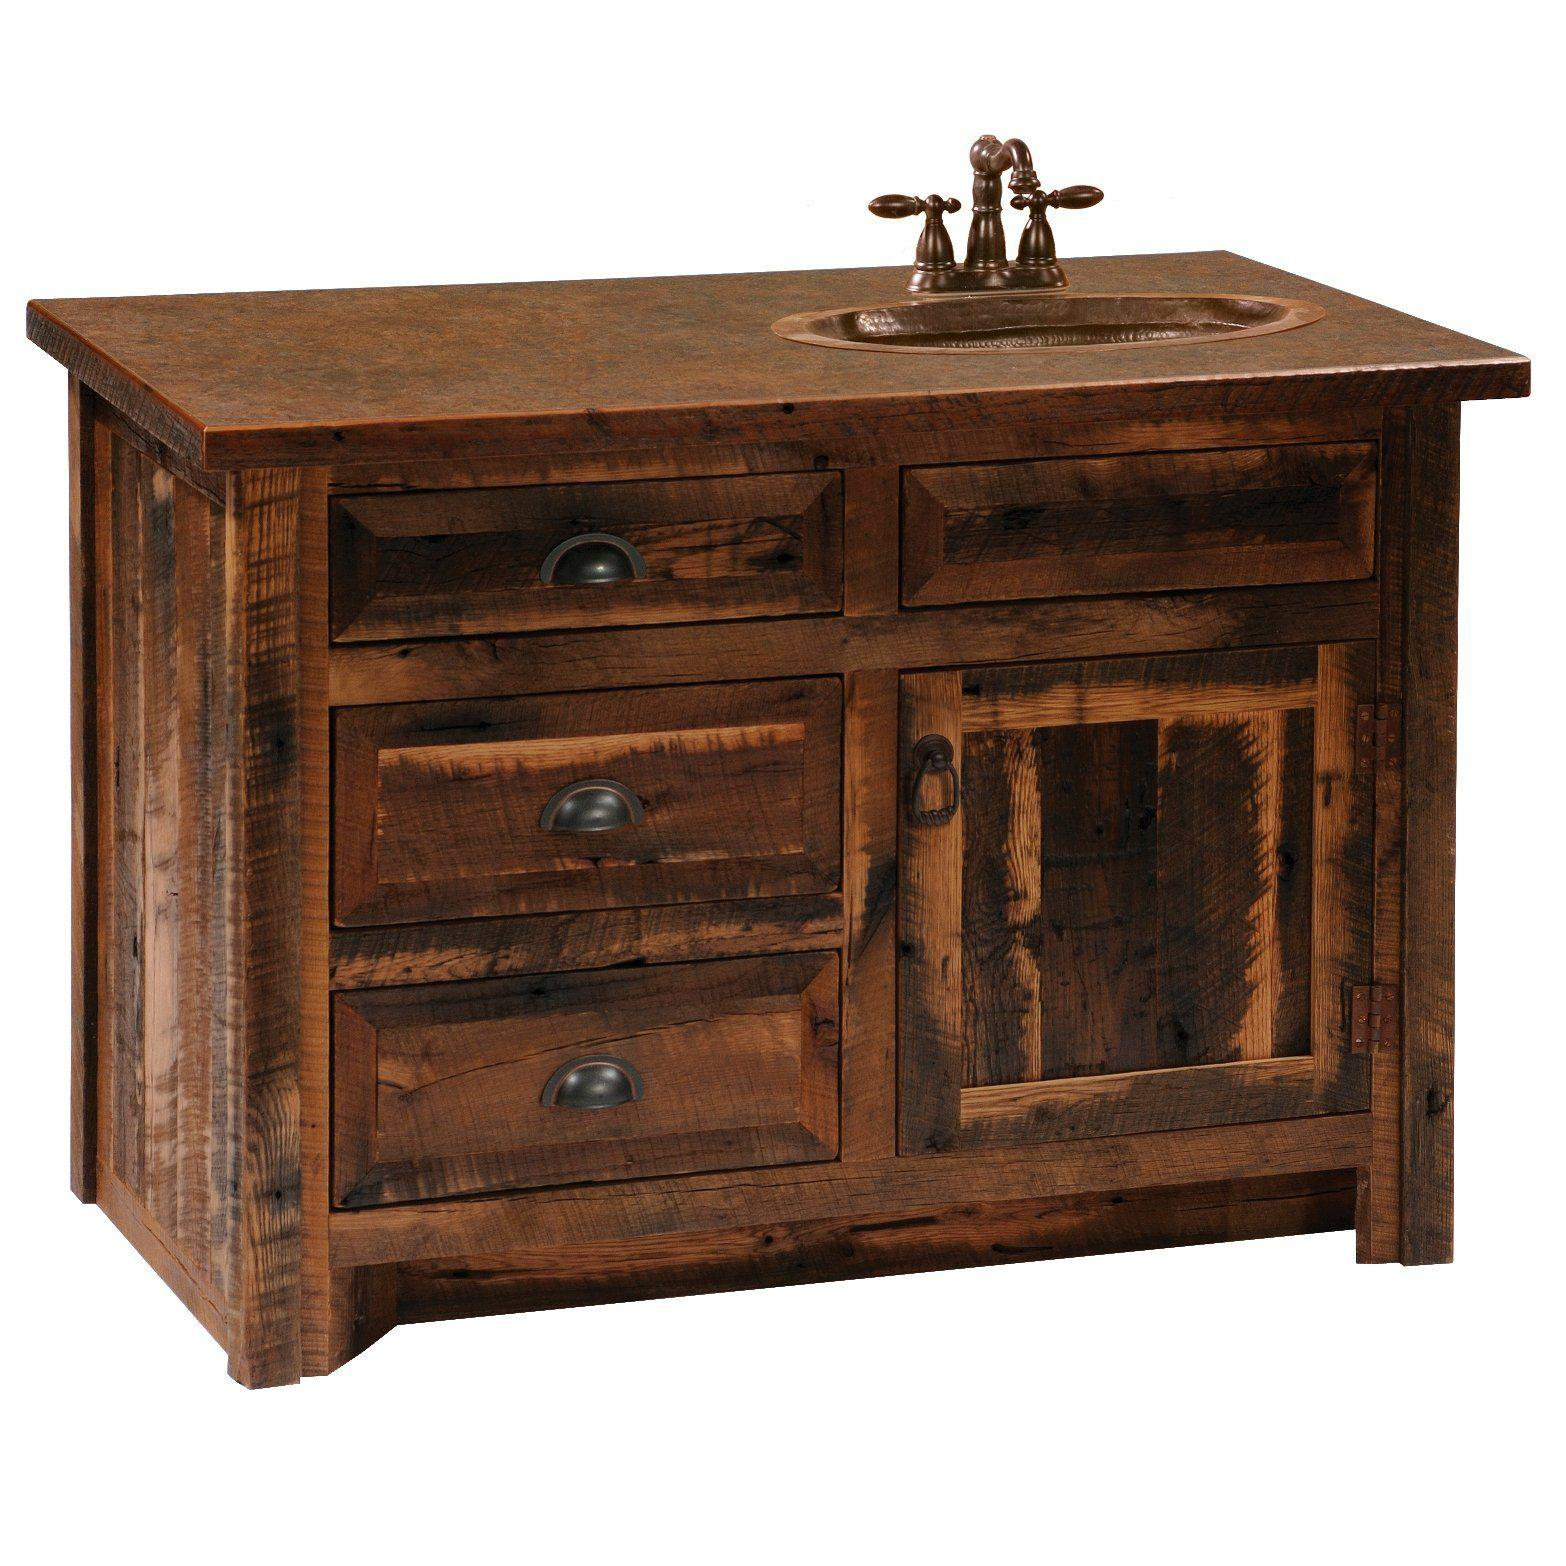 barnwood vanity without top - 36, 42, 48-inch - sink left-right and center